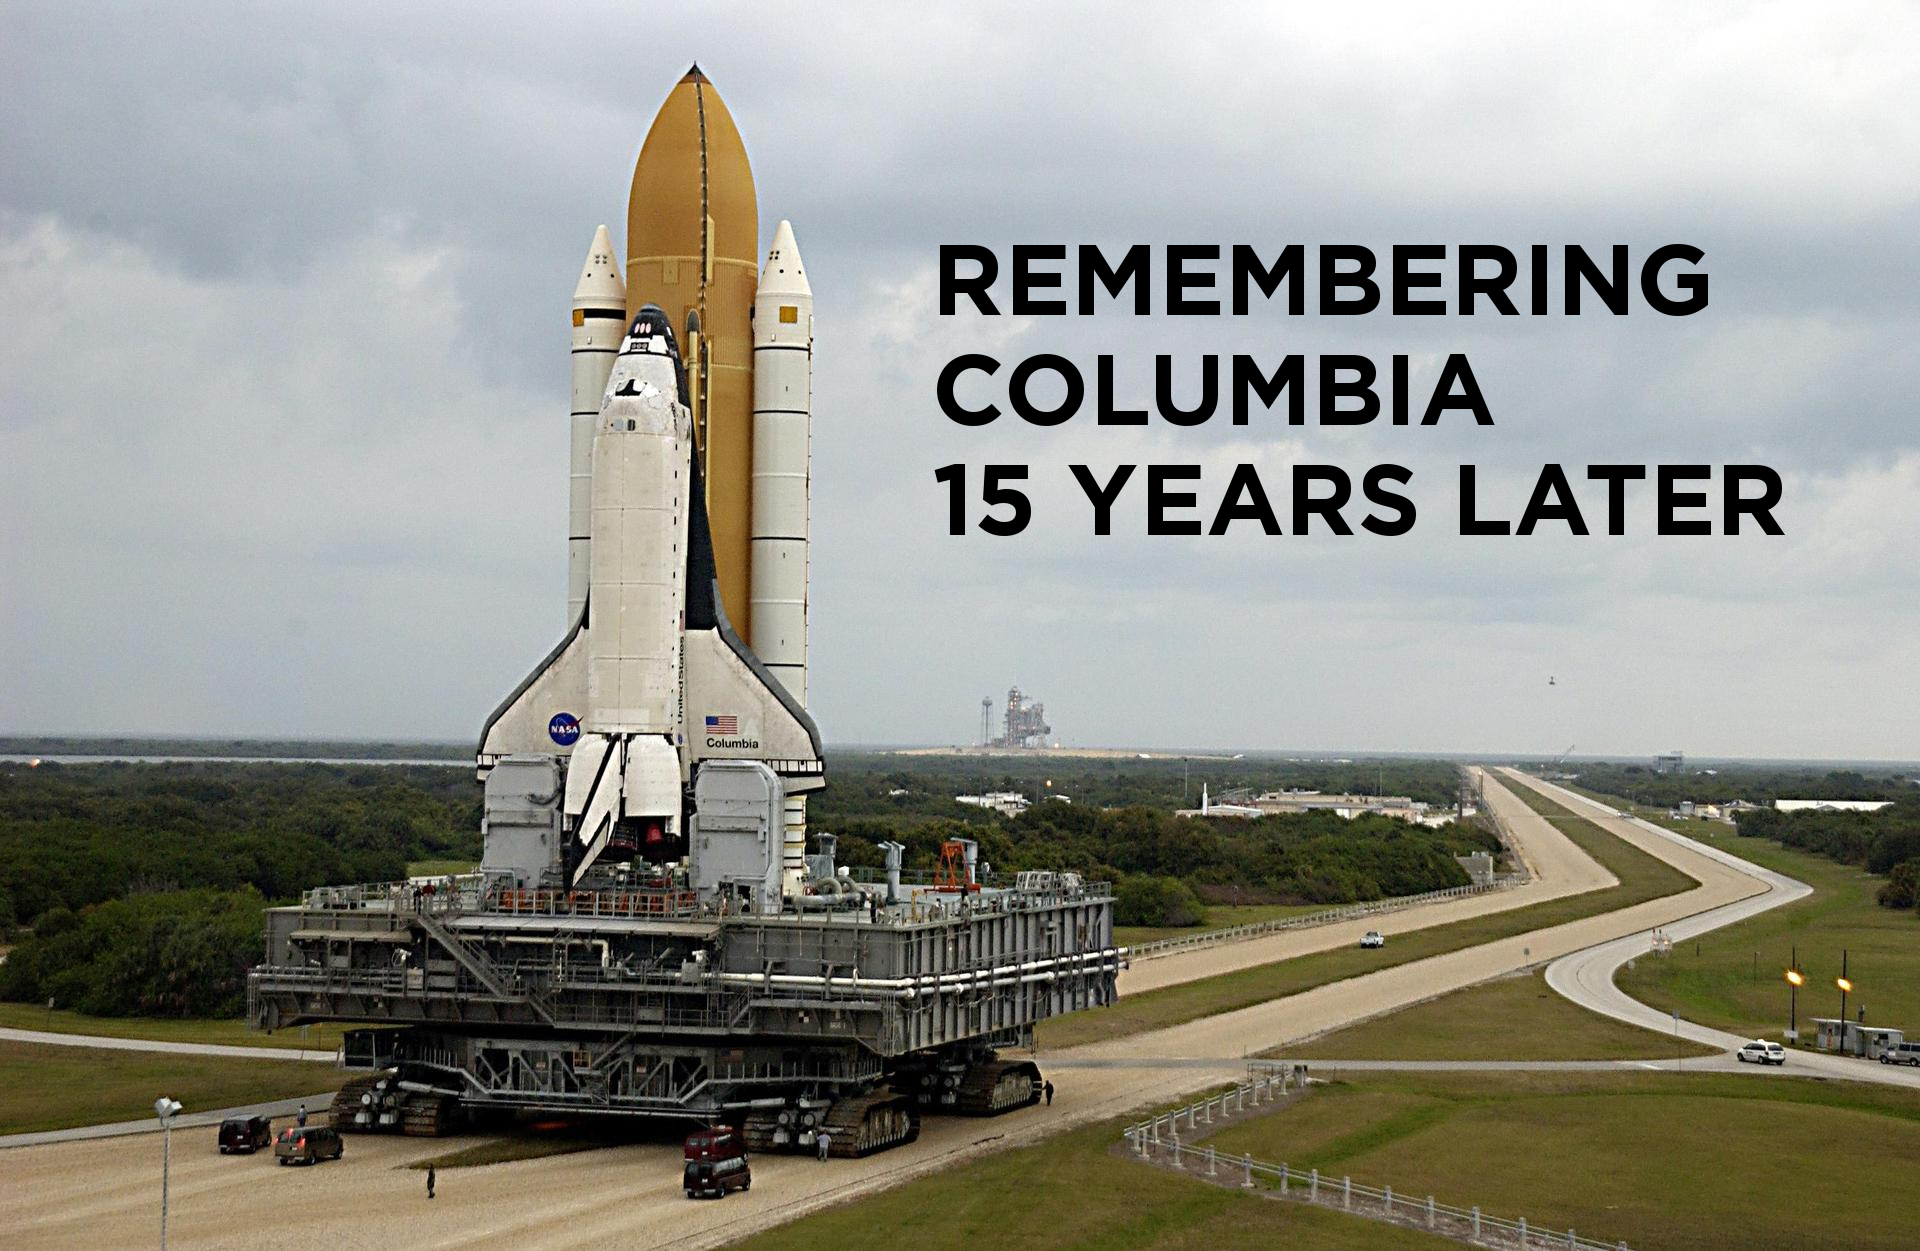 Remembering Columbia